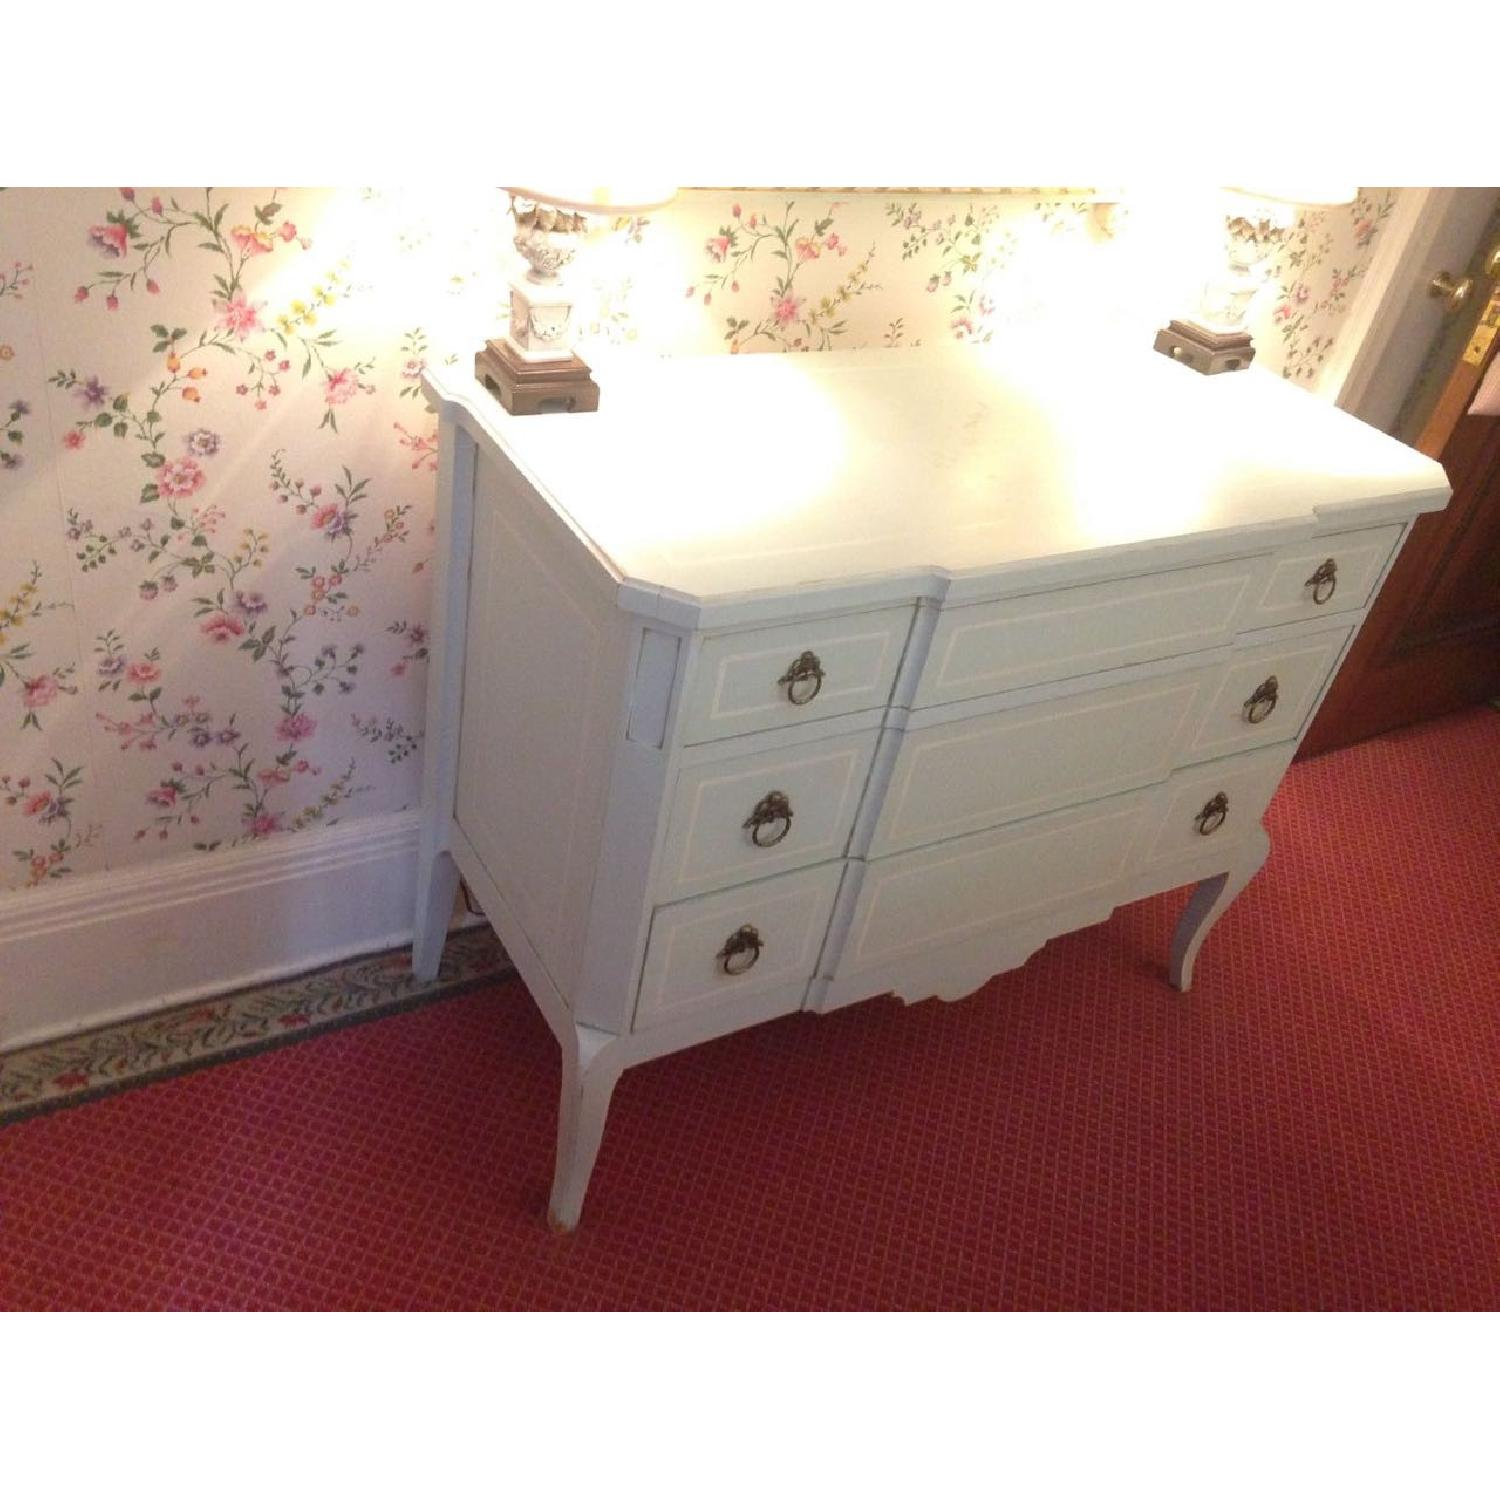 Julia Gray French Dresser w/ Blue Accents - image-14